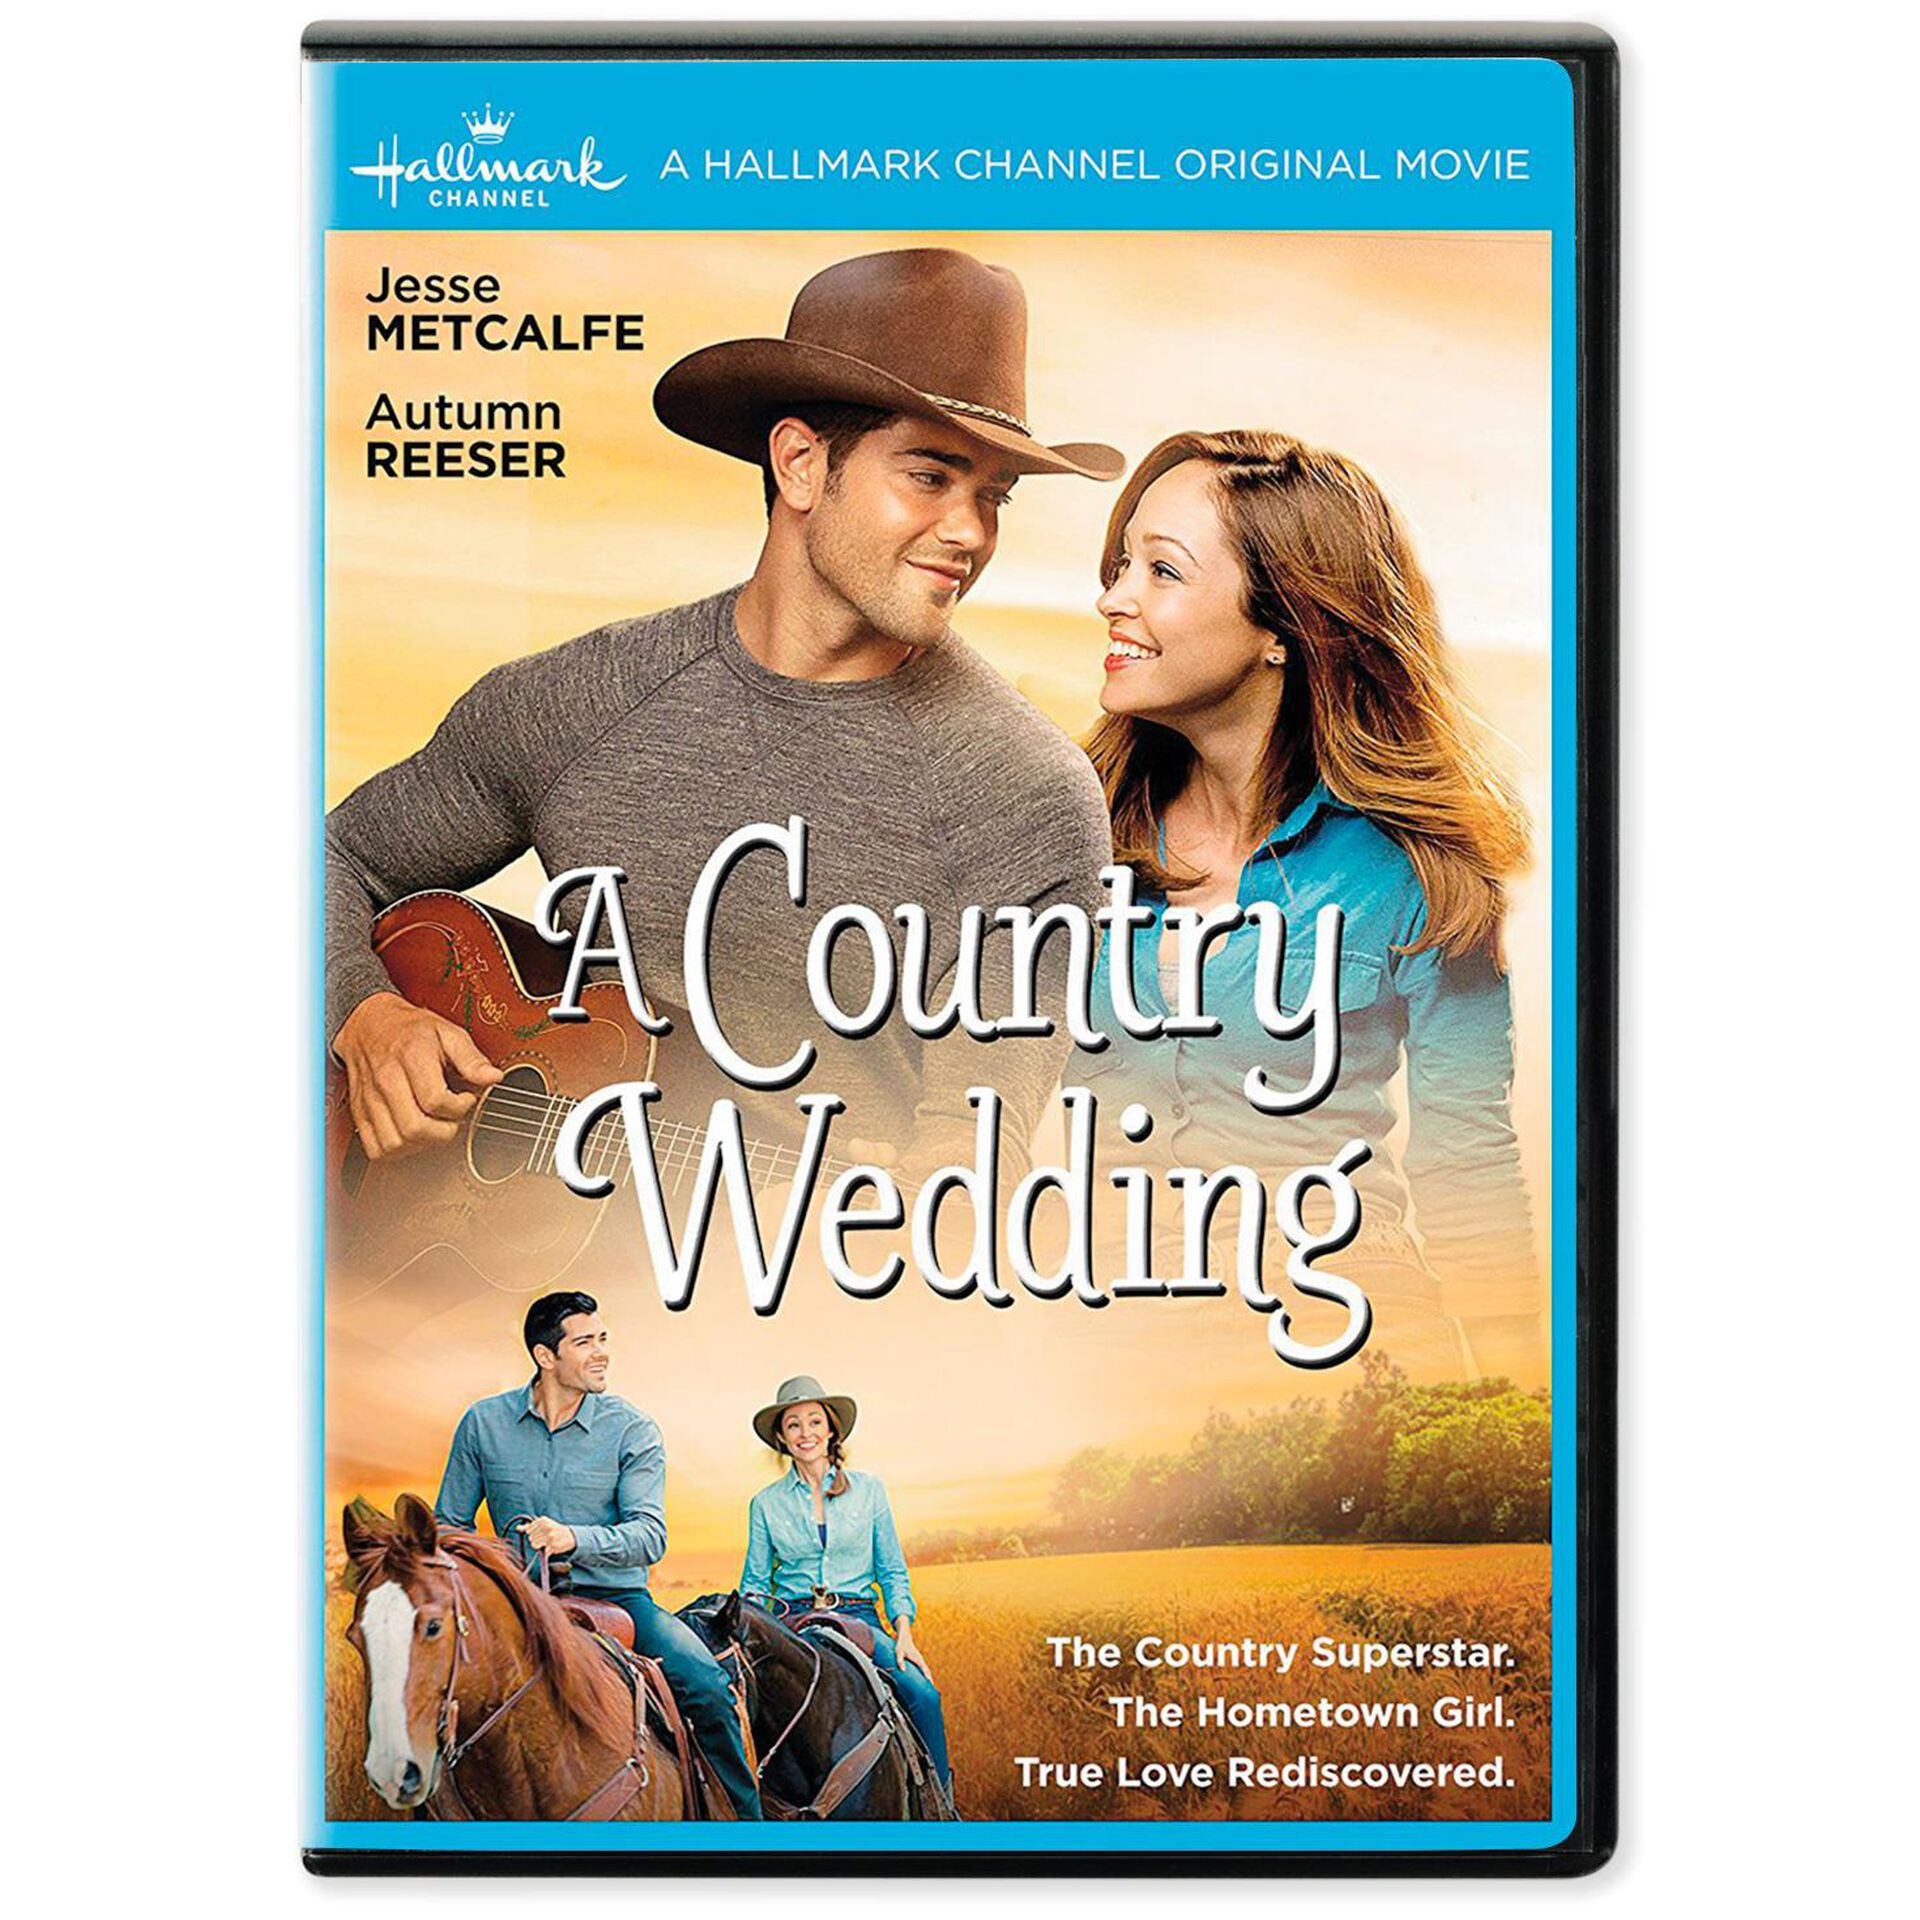 A Country Wedding Dvd Hallmark Channel Hallmark